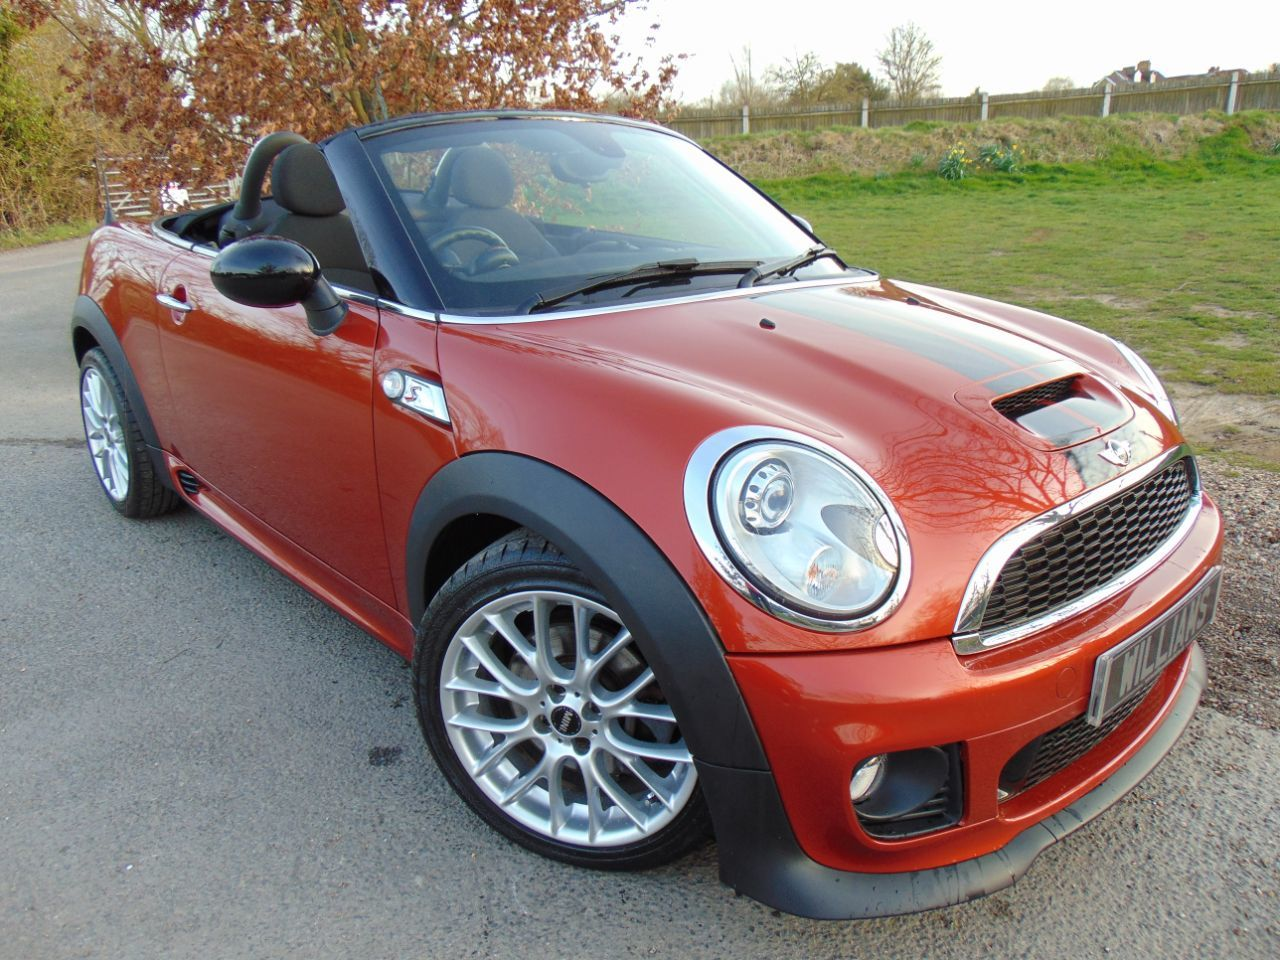 Mini Roadster 1.6 Cooper S 2dr Auto (Low Miles! Sport+Vision Pack! +) Convertible Petrol Spice Orange Metallic